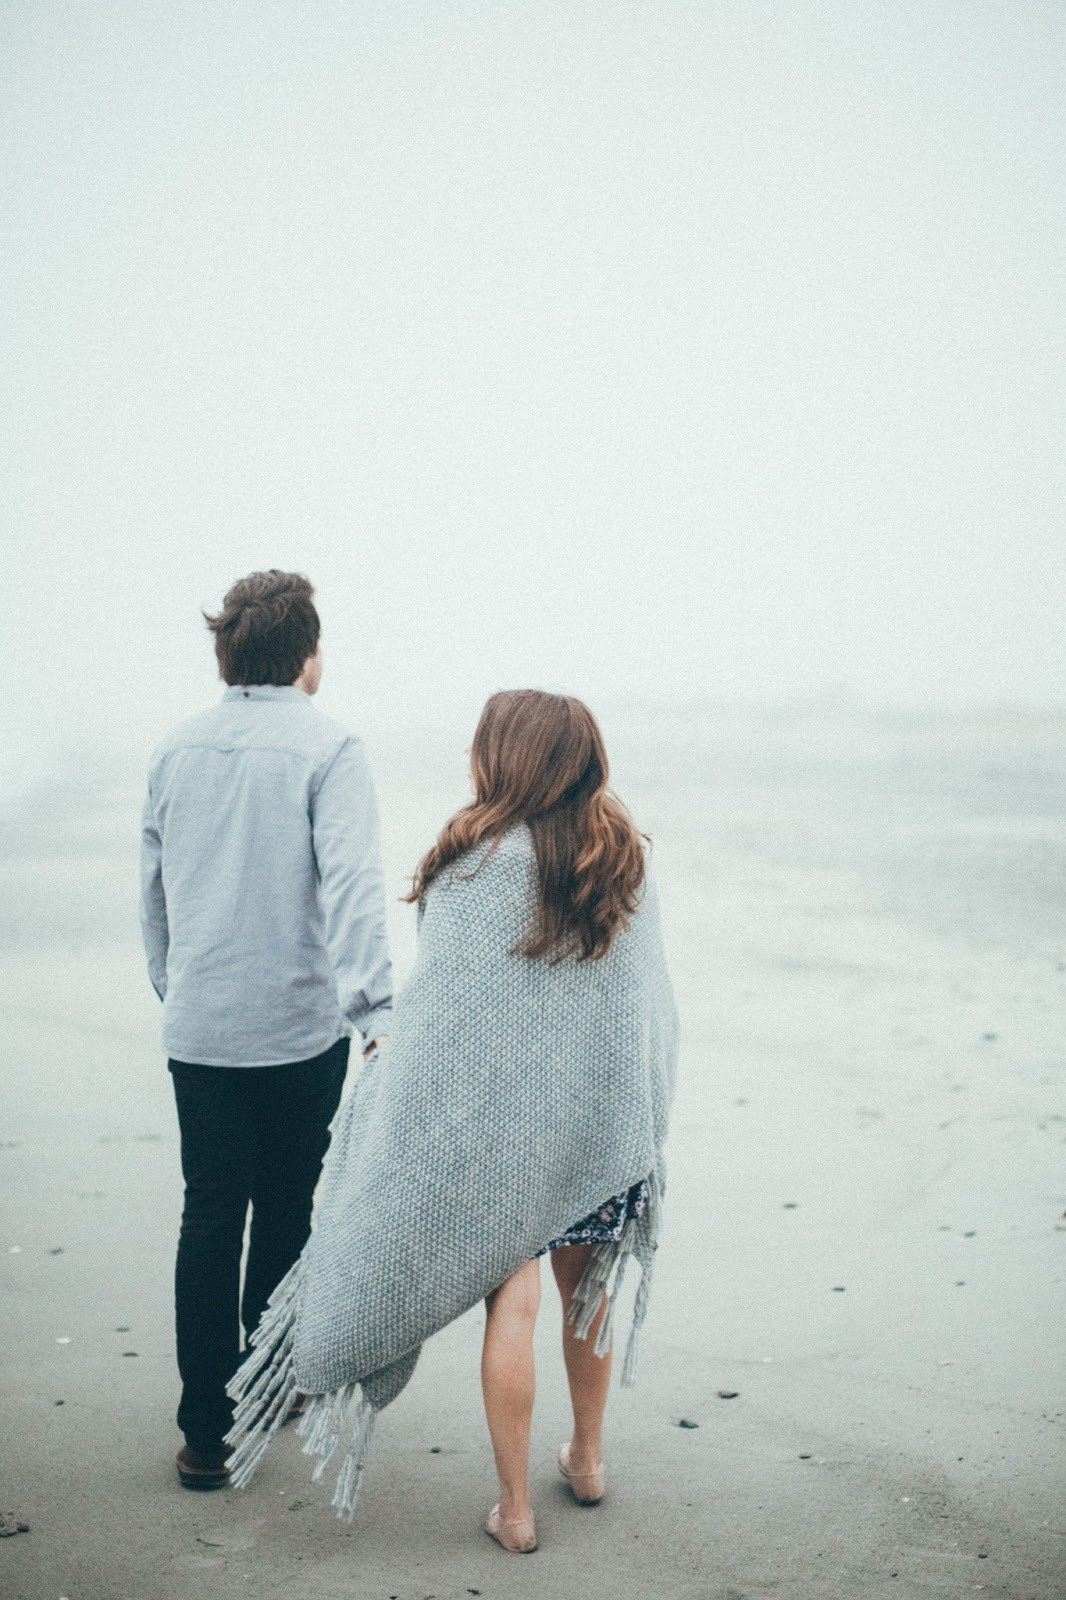 Man in grey jumper and woman wrapped in grey blanket on a beach